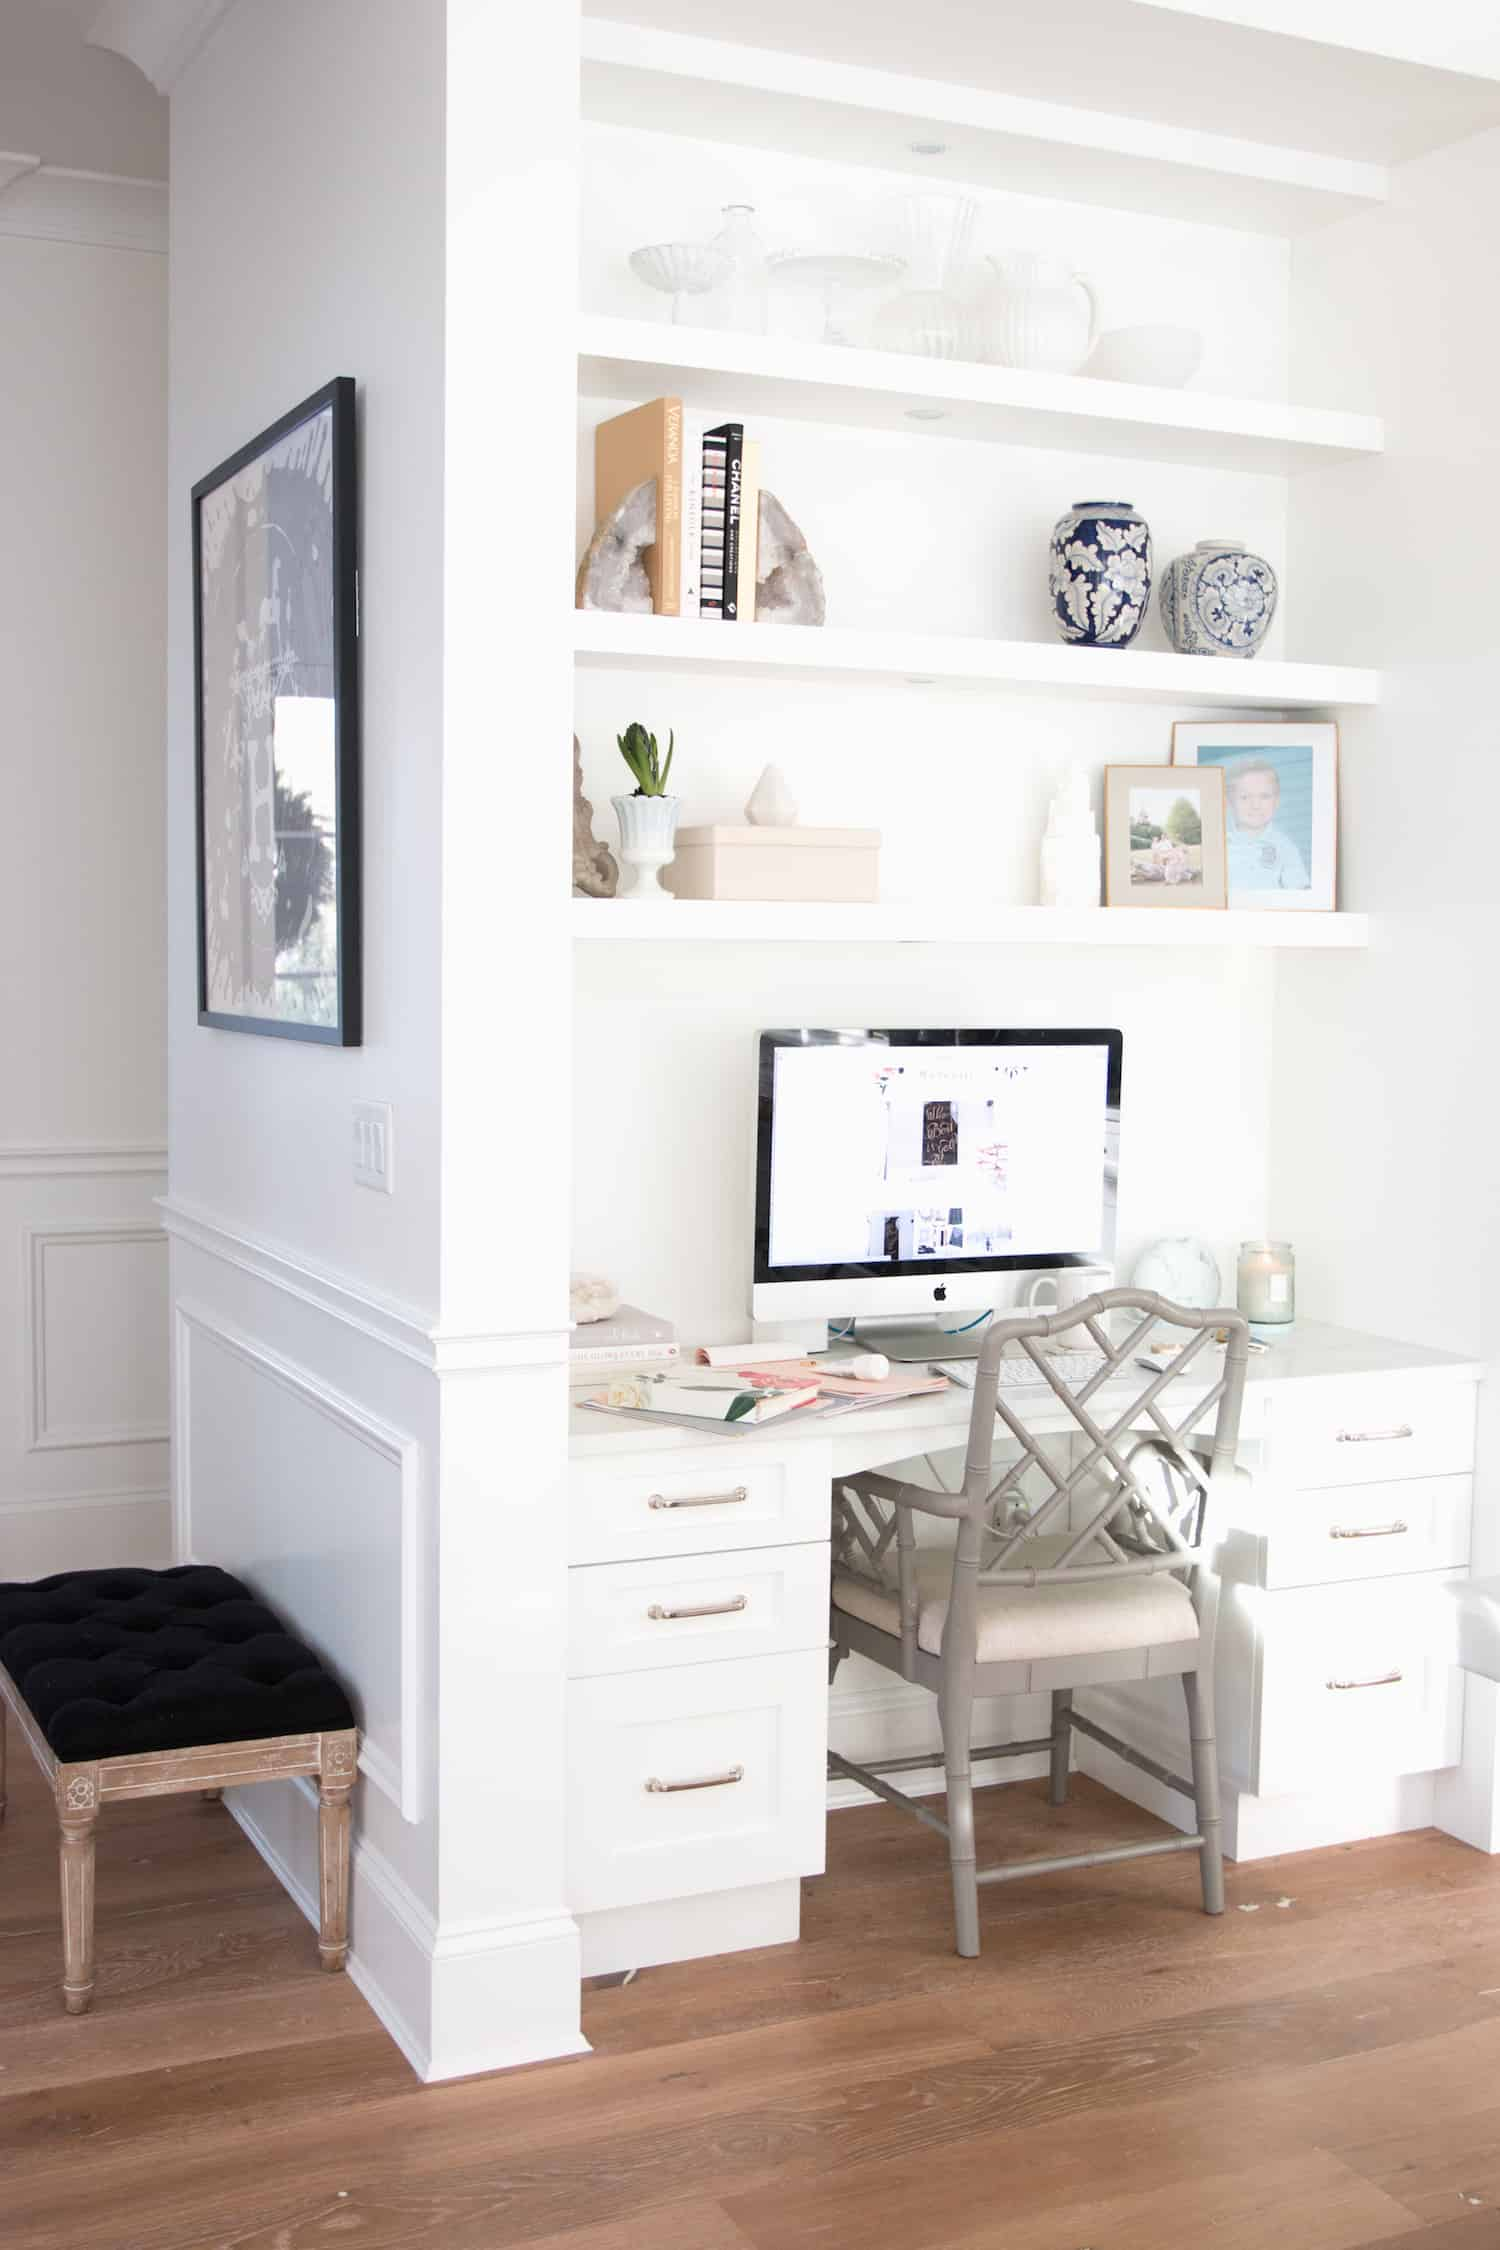 Small Home Office Ideas That Will Make You Want to Work Overtime #smallhomeofficedesign #officegoals stunning desk decor ideas